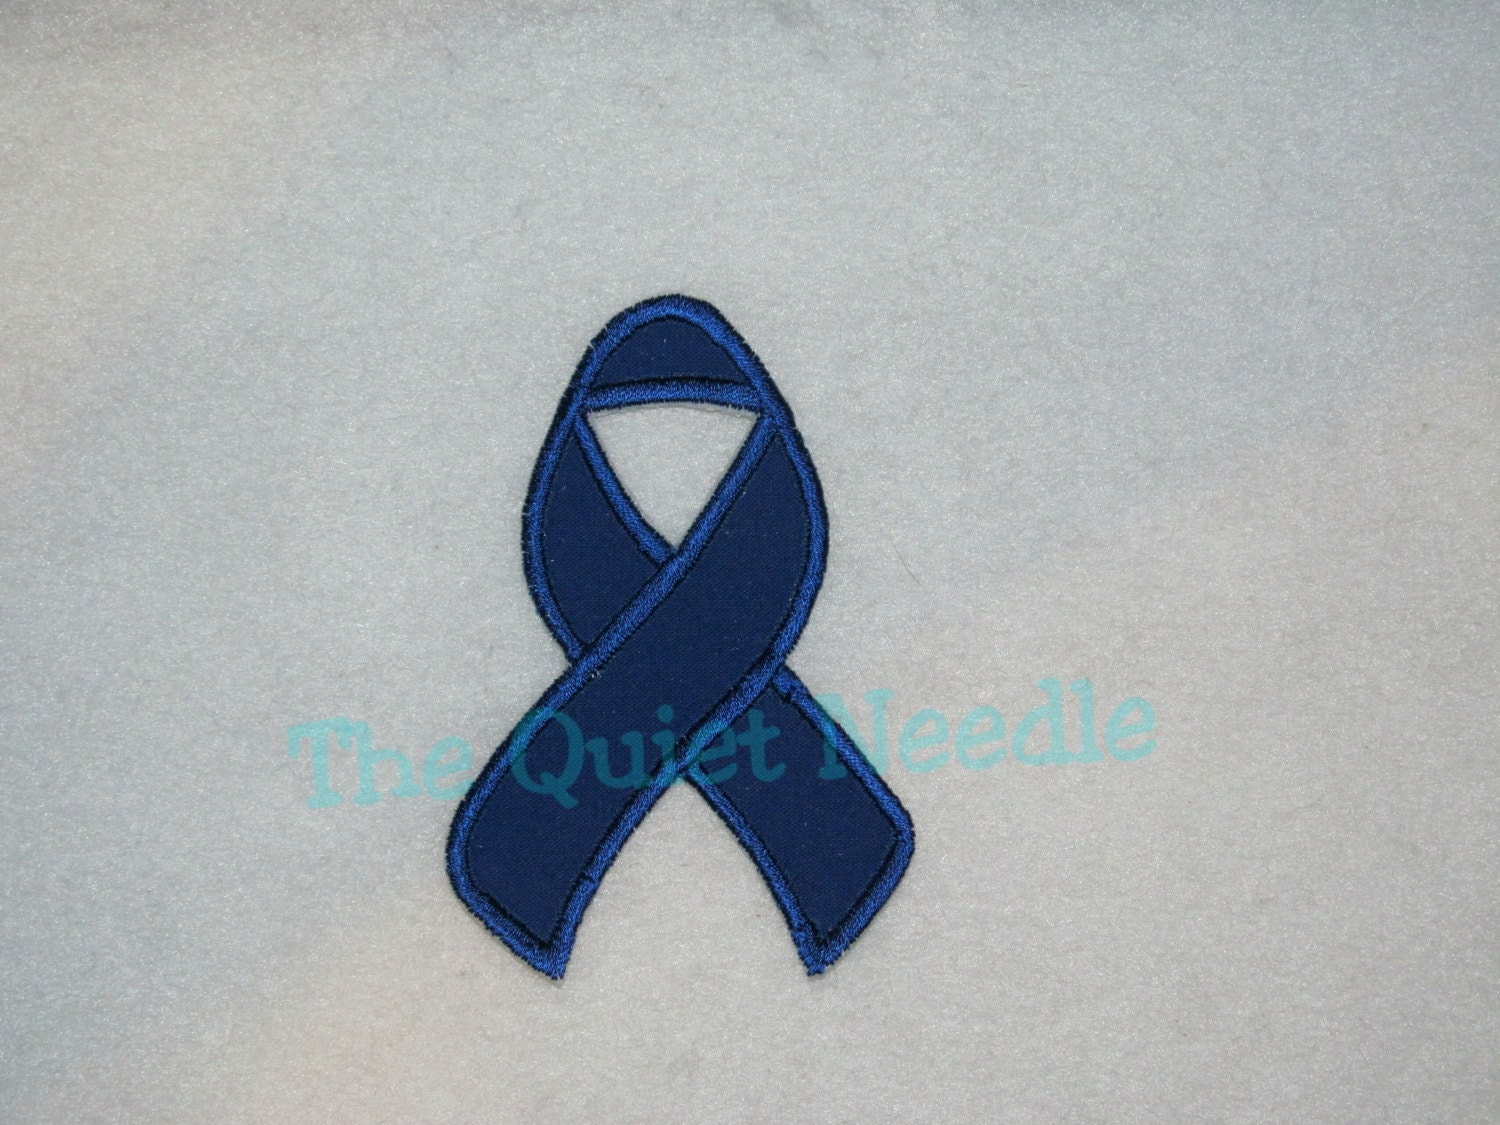 Blue Colon Cancer Awareness Ribbon Iron On Applique Patch Etsy